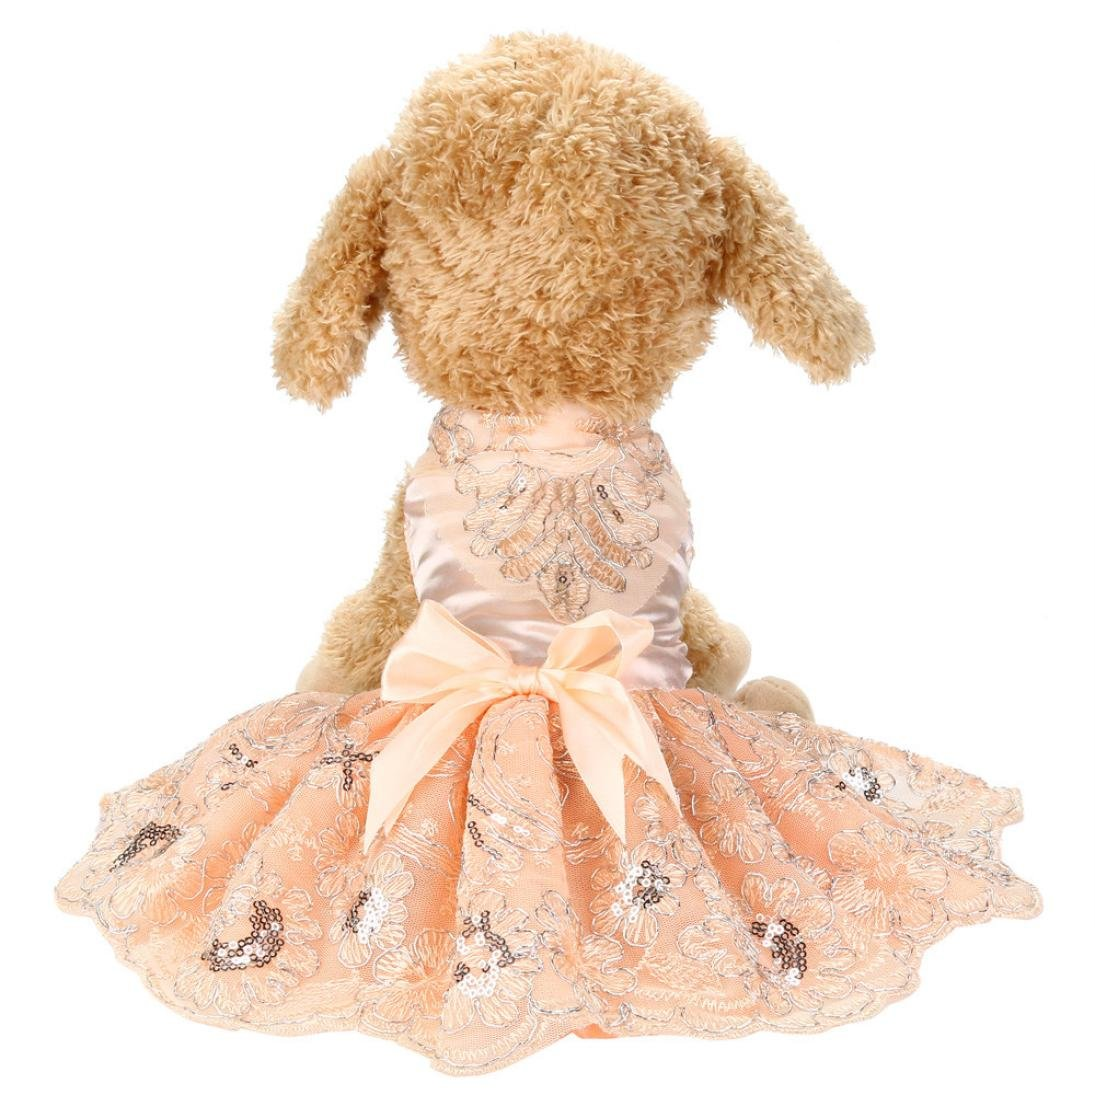 Howstar Pet Dress Lace Princess Wedding Dresses for Dog Puppy Elegant Cute Clothes Soft Silk Apparels (S, Pink)